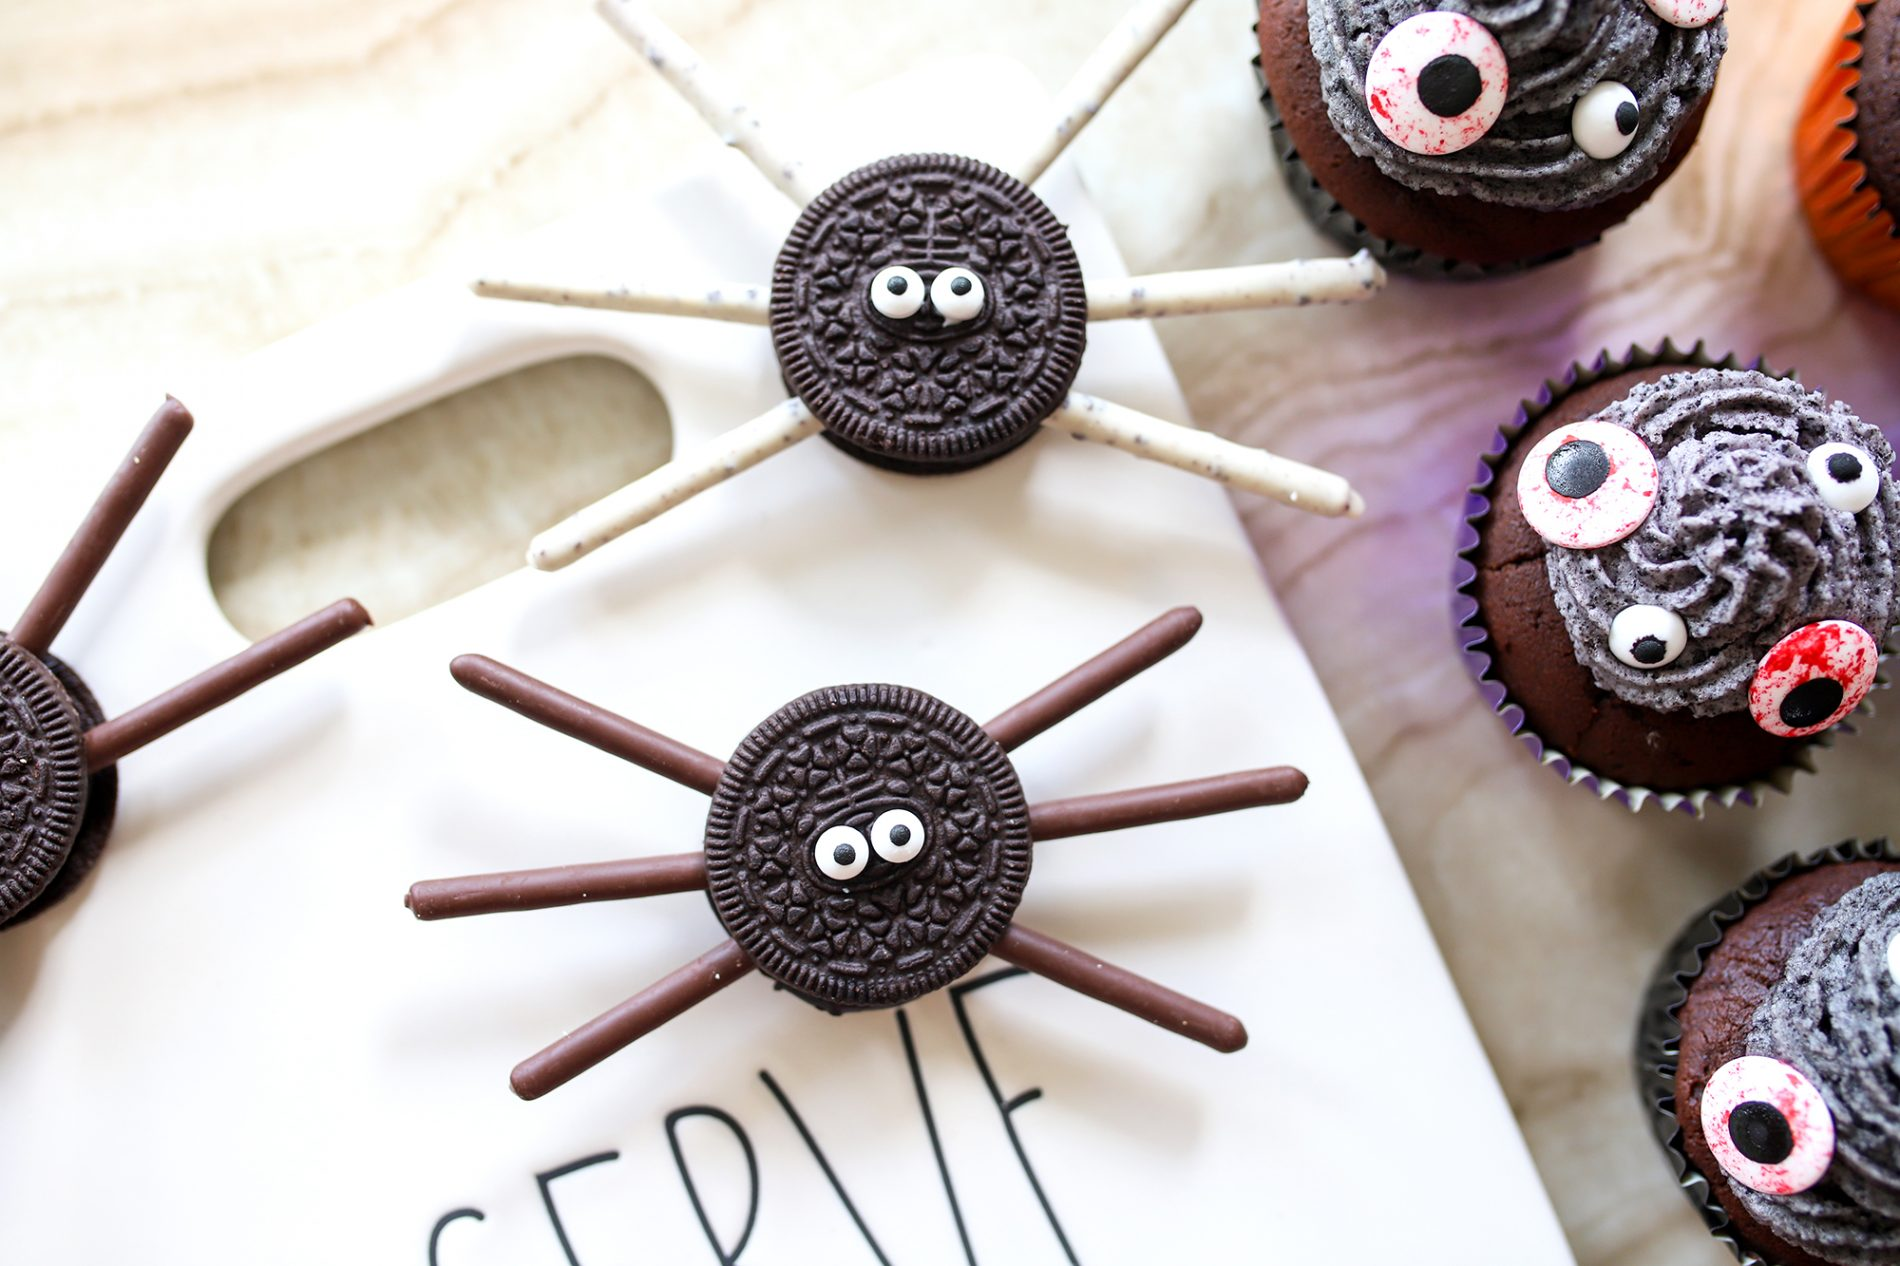 a spider made with oreo cookies and pocky on top of a are dunn serve tray